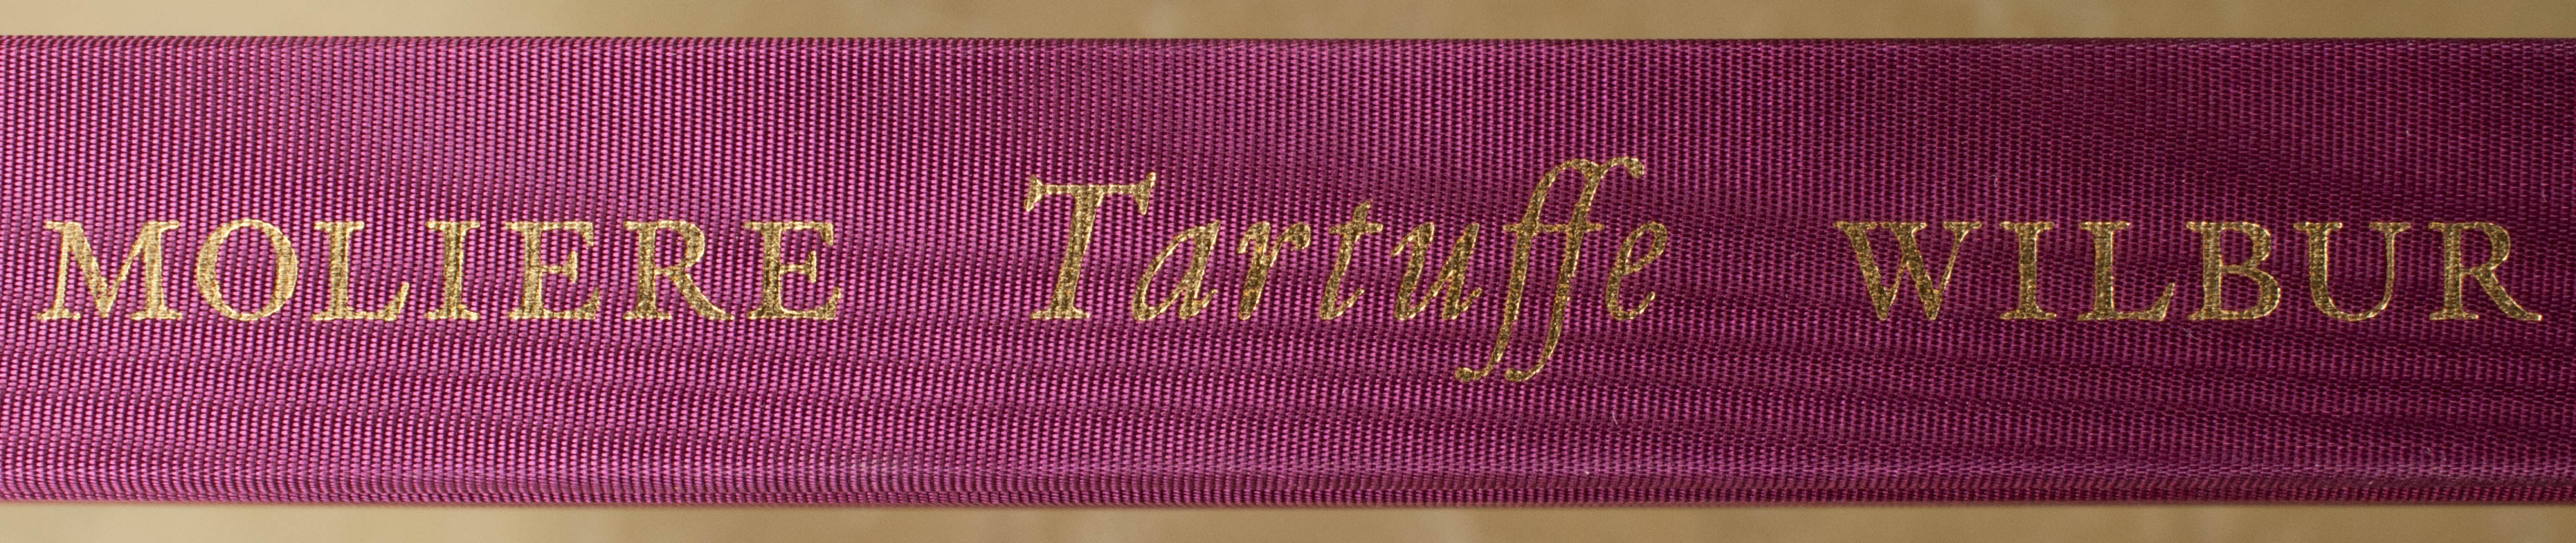 the book of tartuffe Two timeless comedies by one of france's greatest playwrights: tartuffe , a 1664 verse comedy concerning a scoundrel who impersonates a holy man, and the 1670 prose.